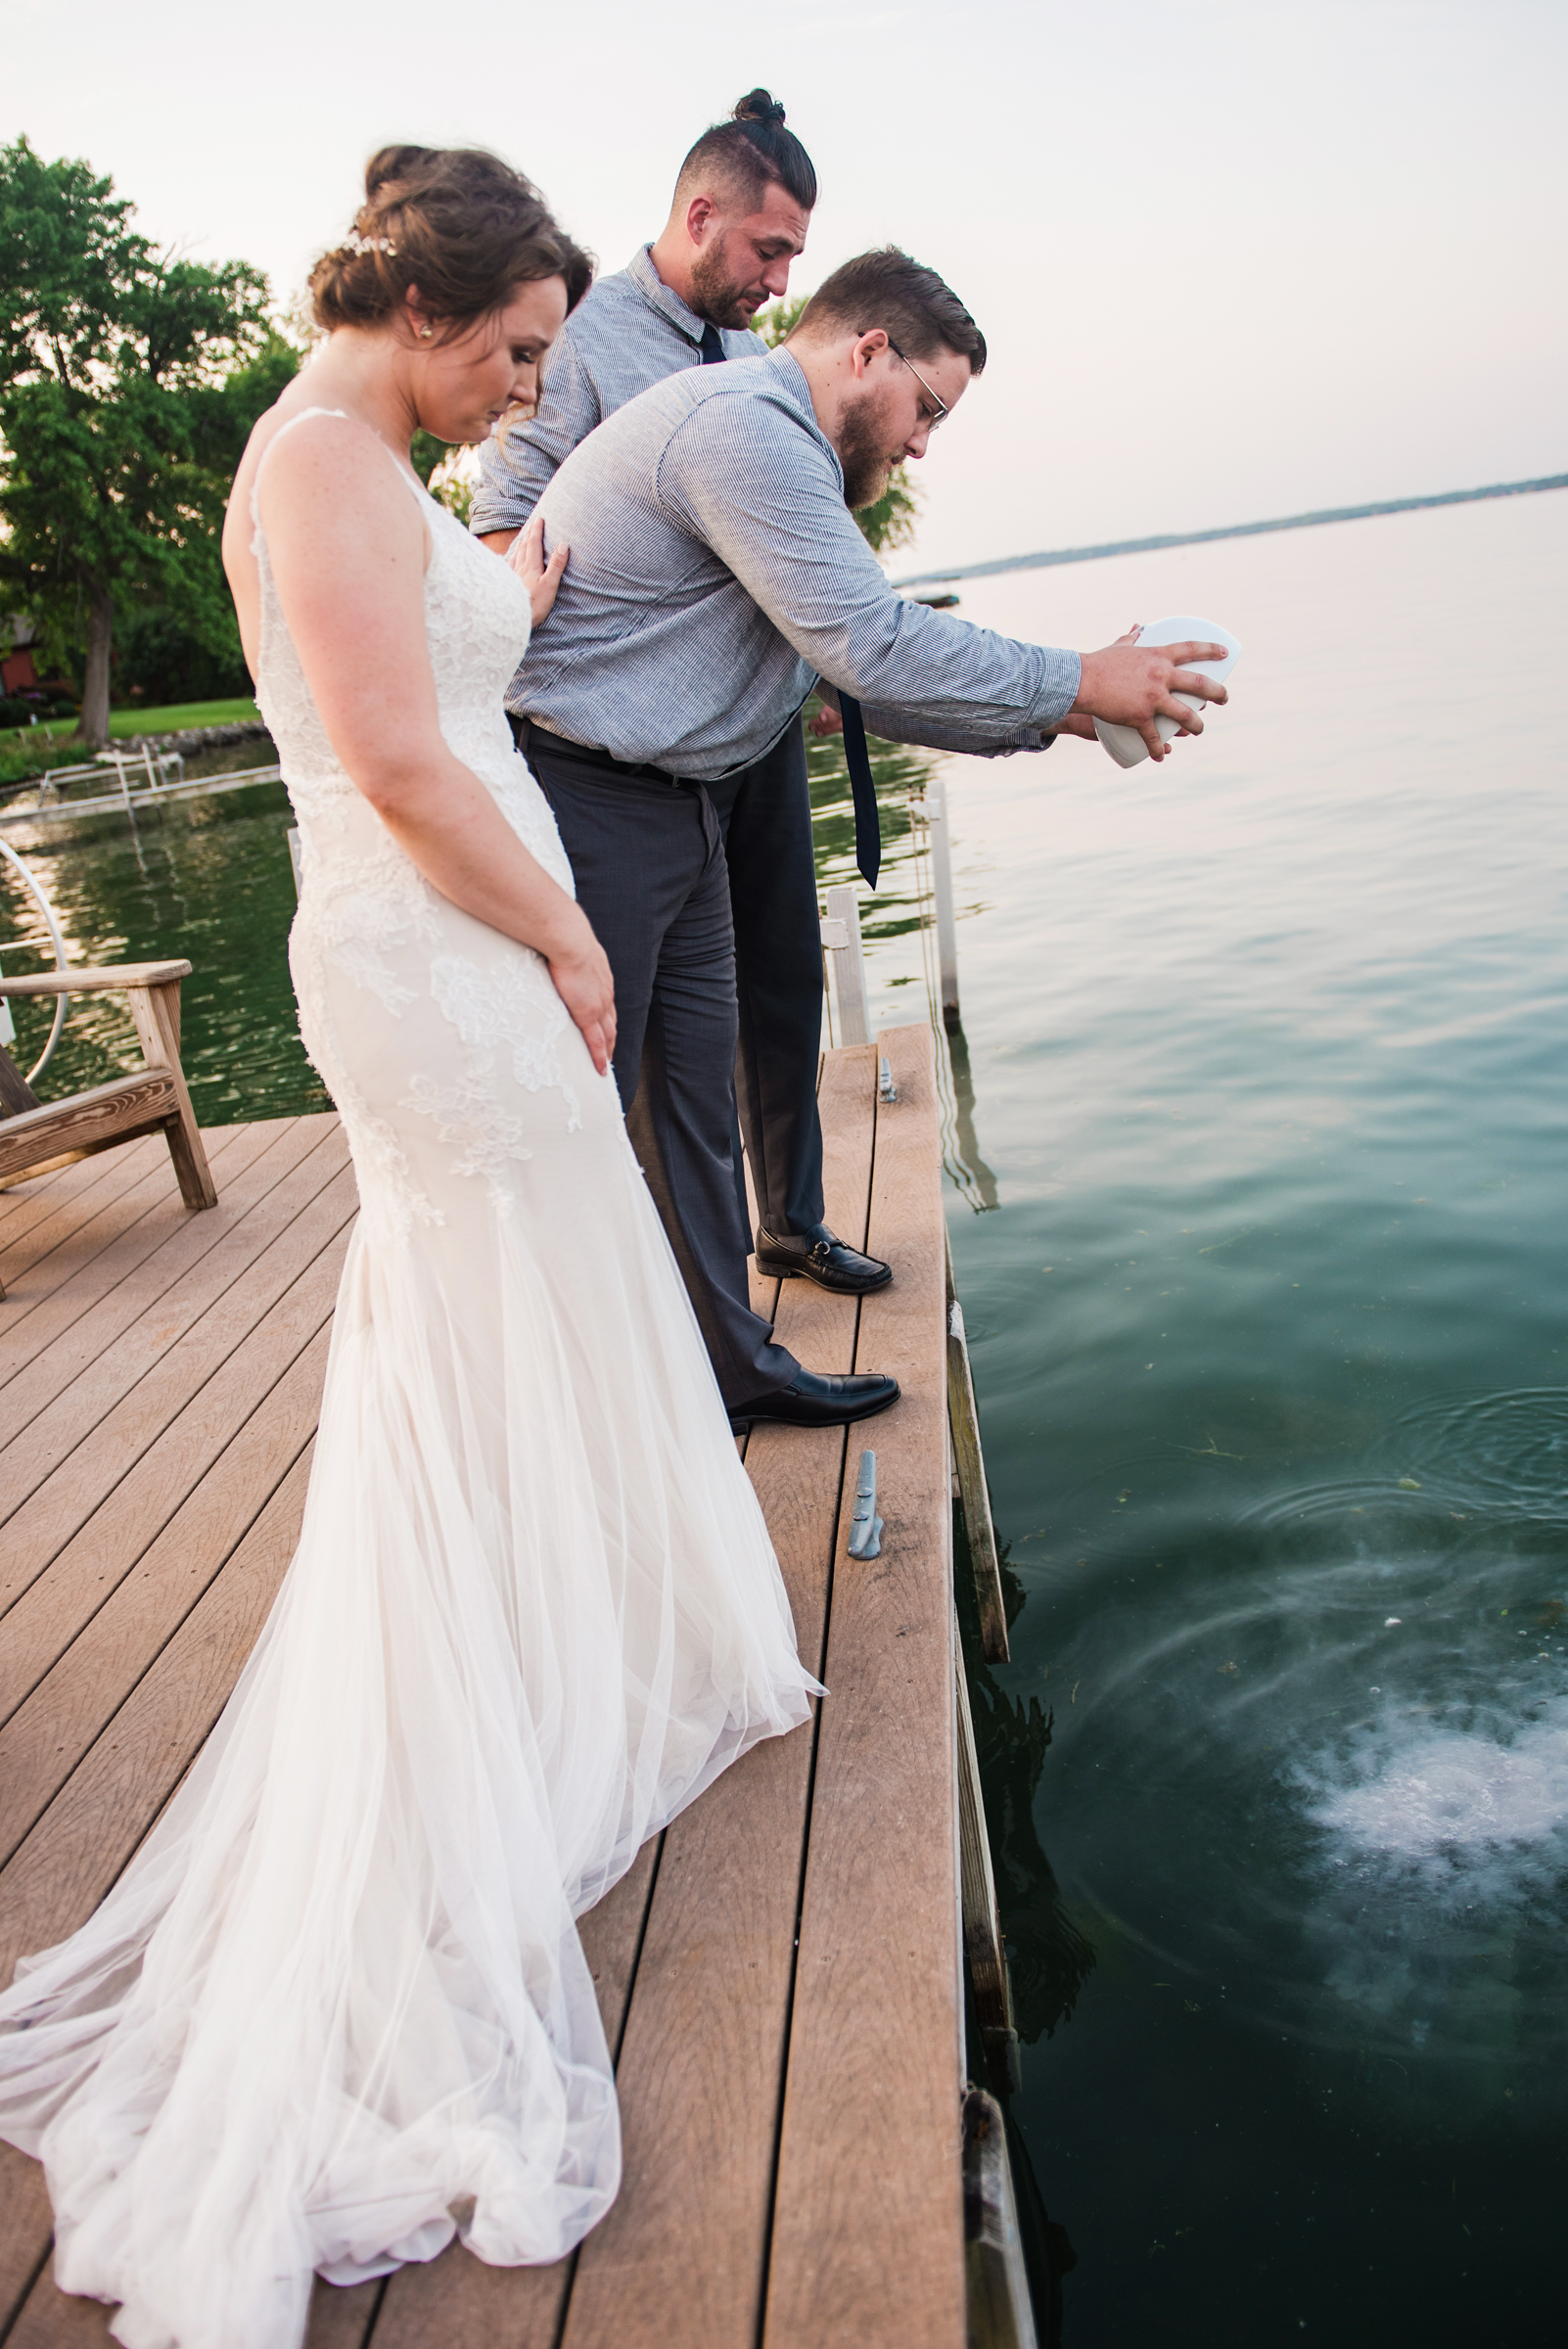 JILL_STUDIO_Wedding_JILL_STUDIO_Rochester_NY_Photographer_15-DSC_3972.jpg